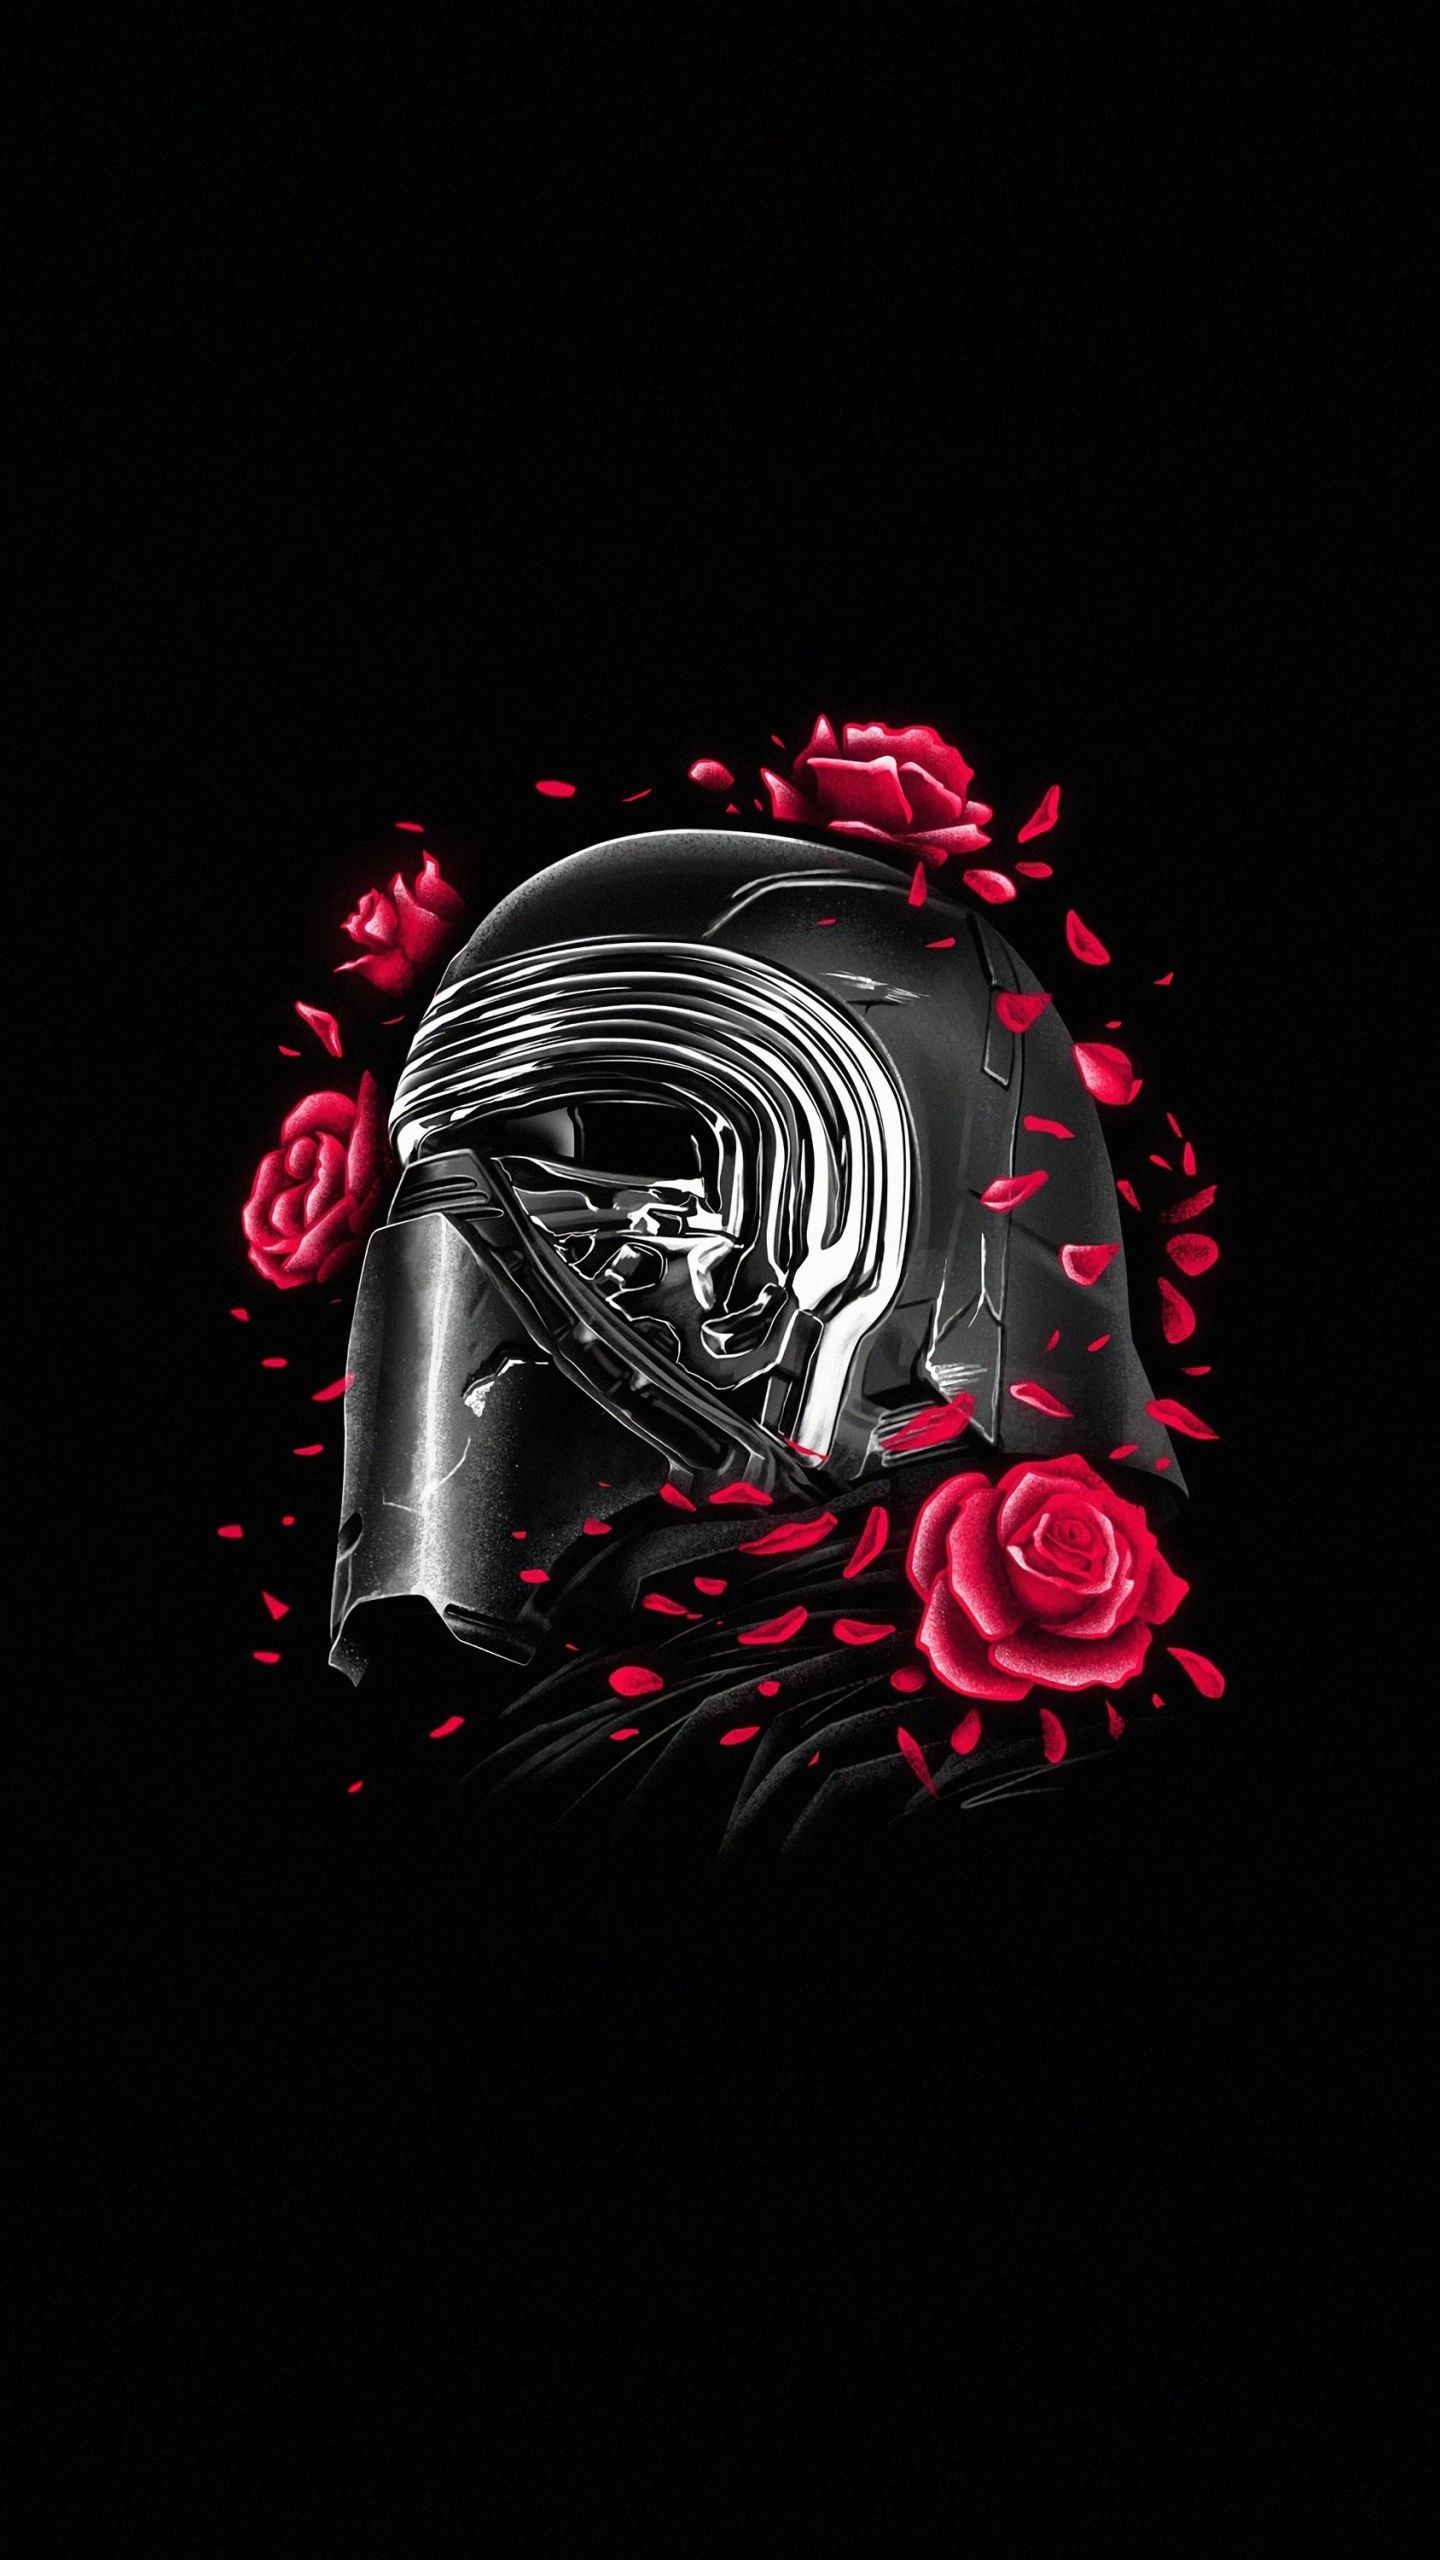 Kylo Ren Mask Wallpapers Top Free Kylo Ren Mask Backgrounds Wallpaperaccess